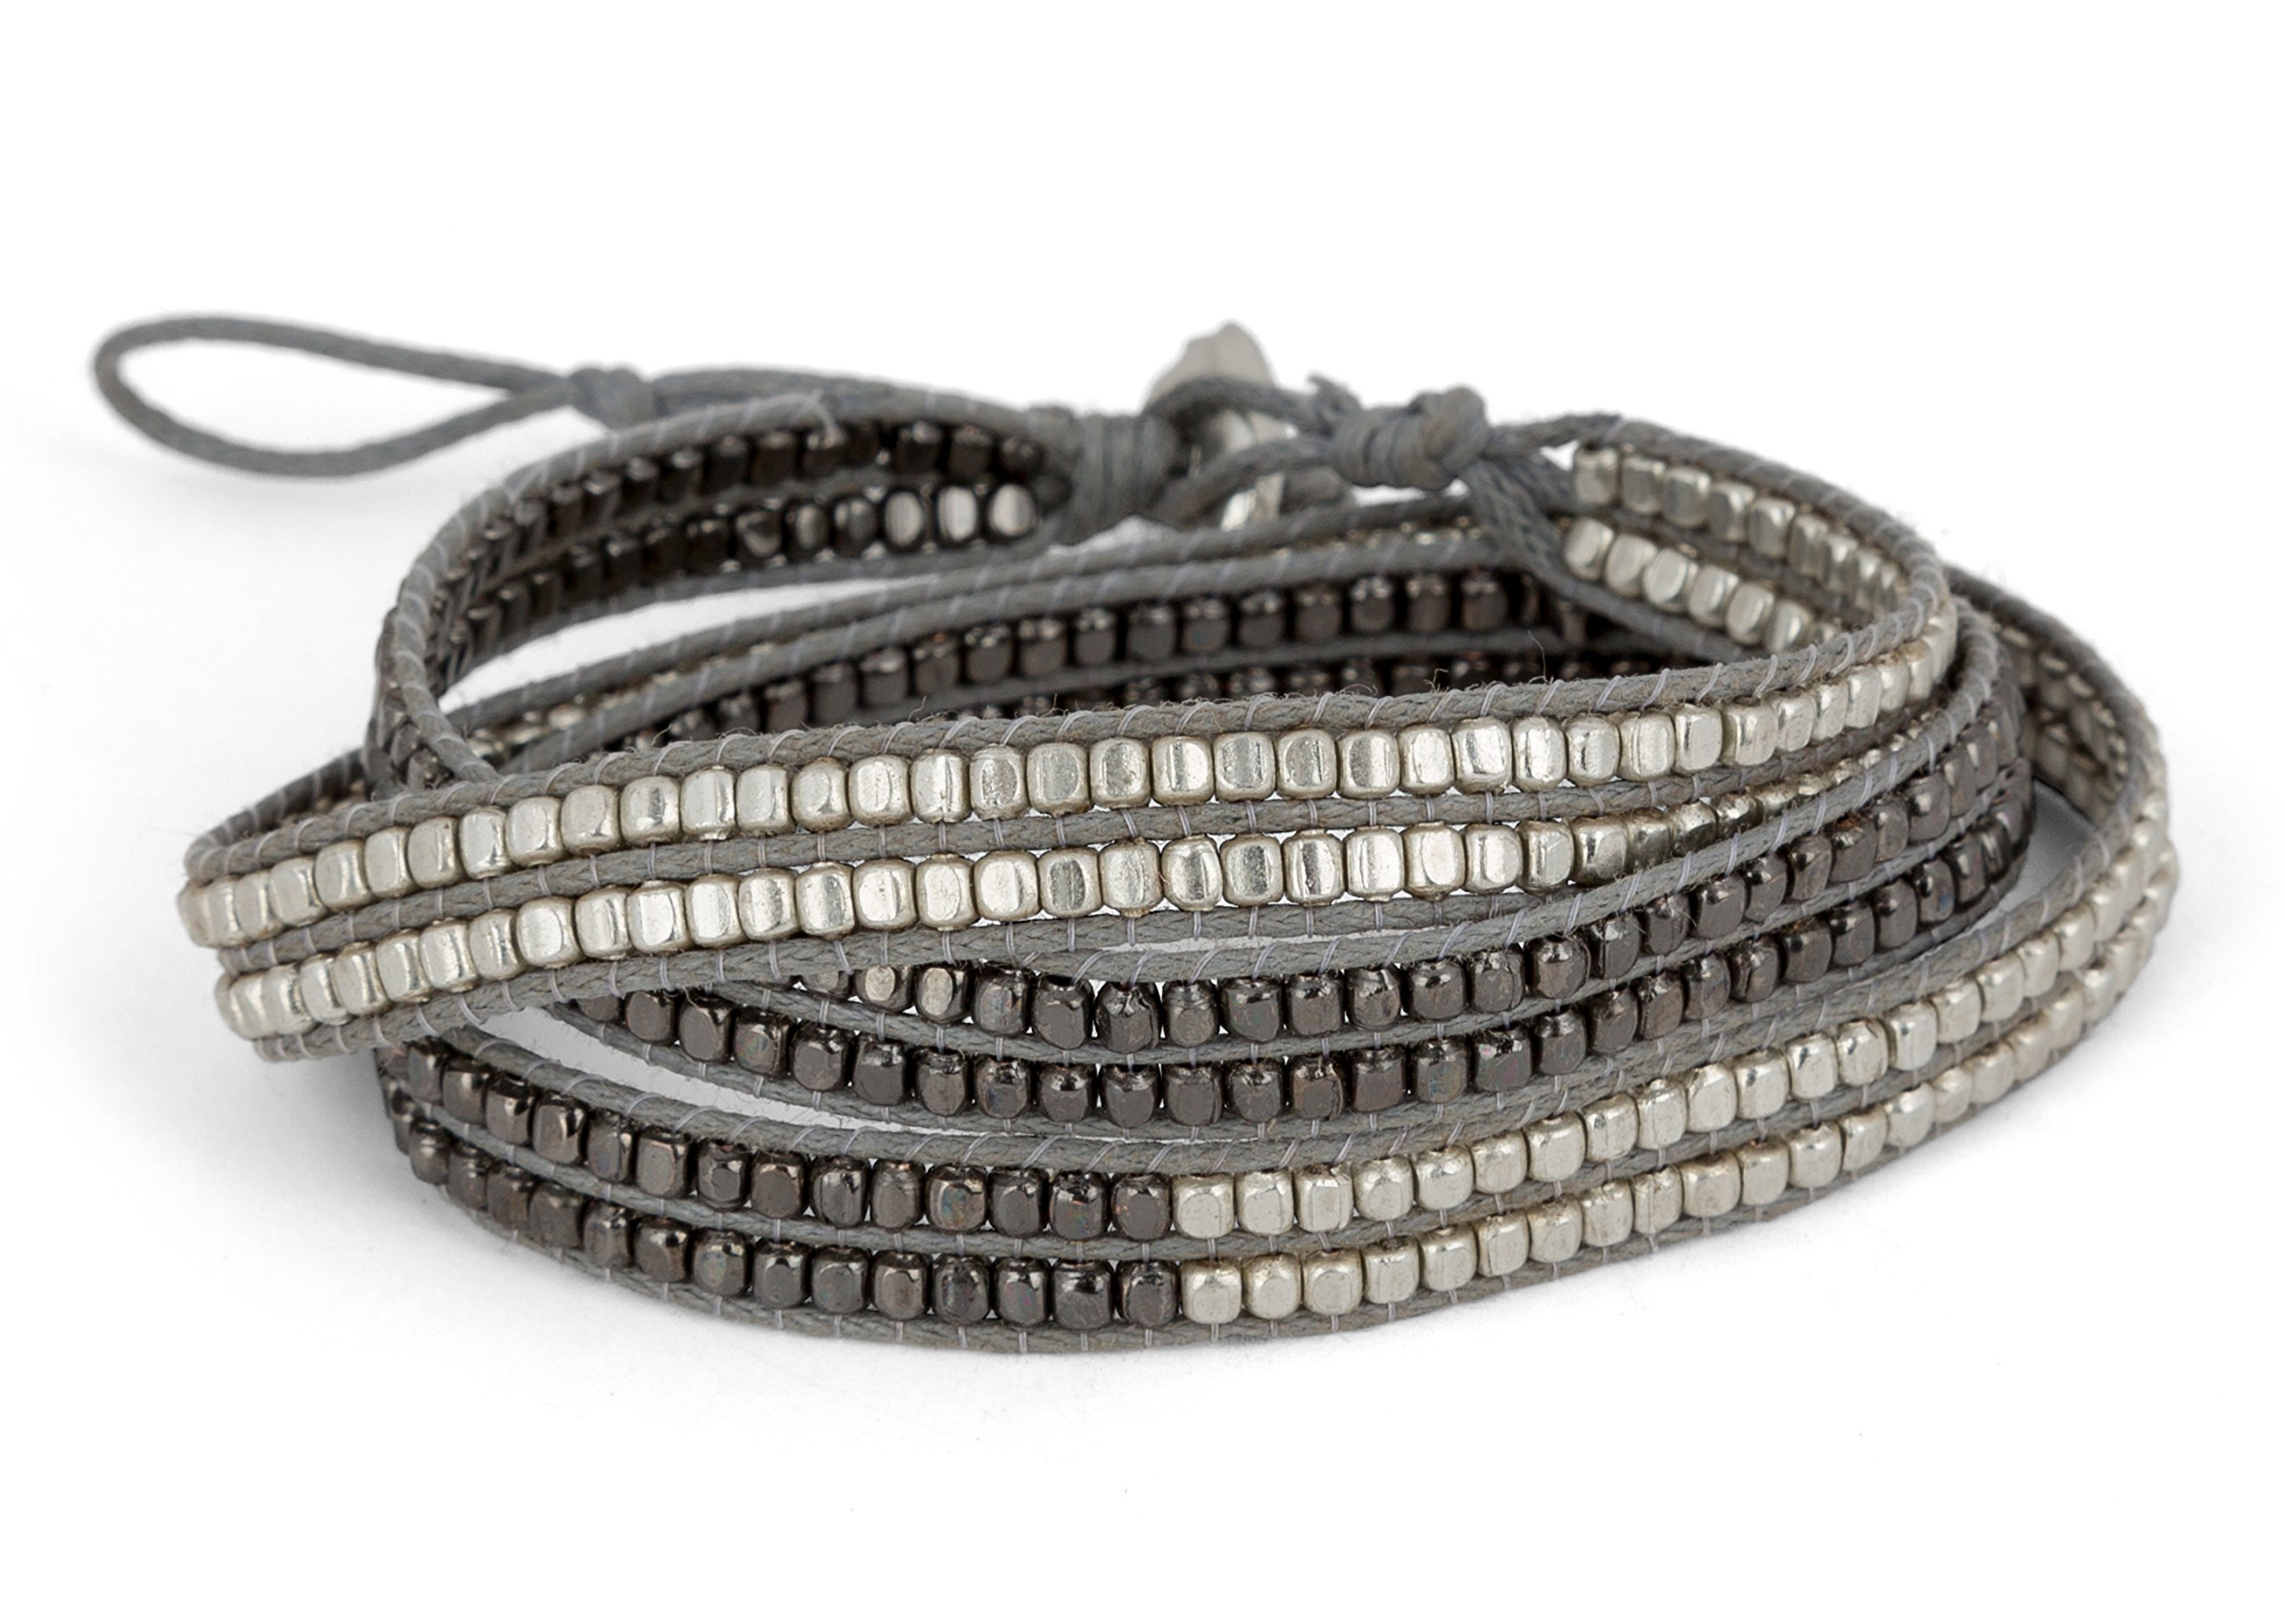 New! Handmade Boho 3 Wrap Bracelet Silver and Gun Metal Silver for Women | SPUNKYsoul Collection